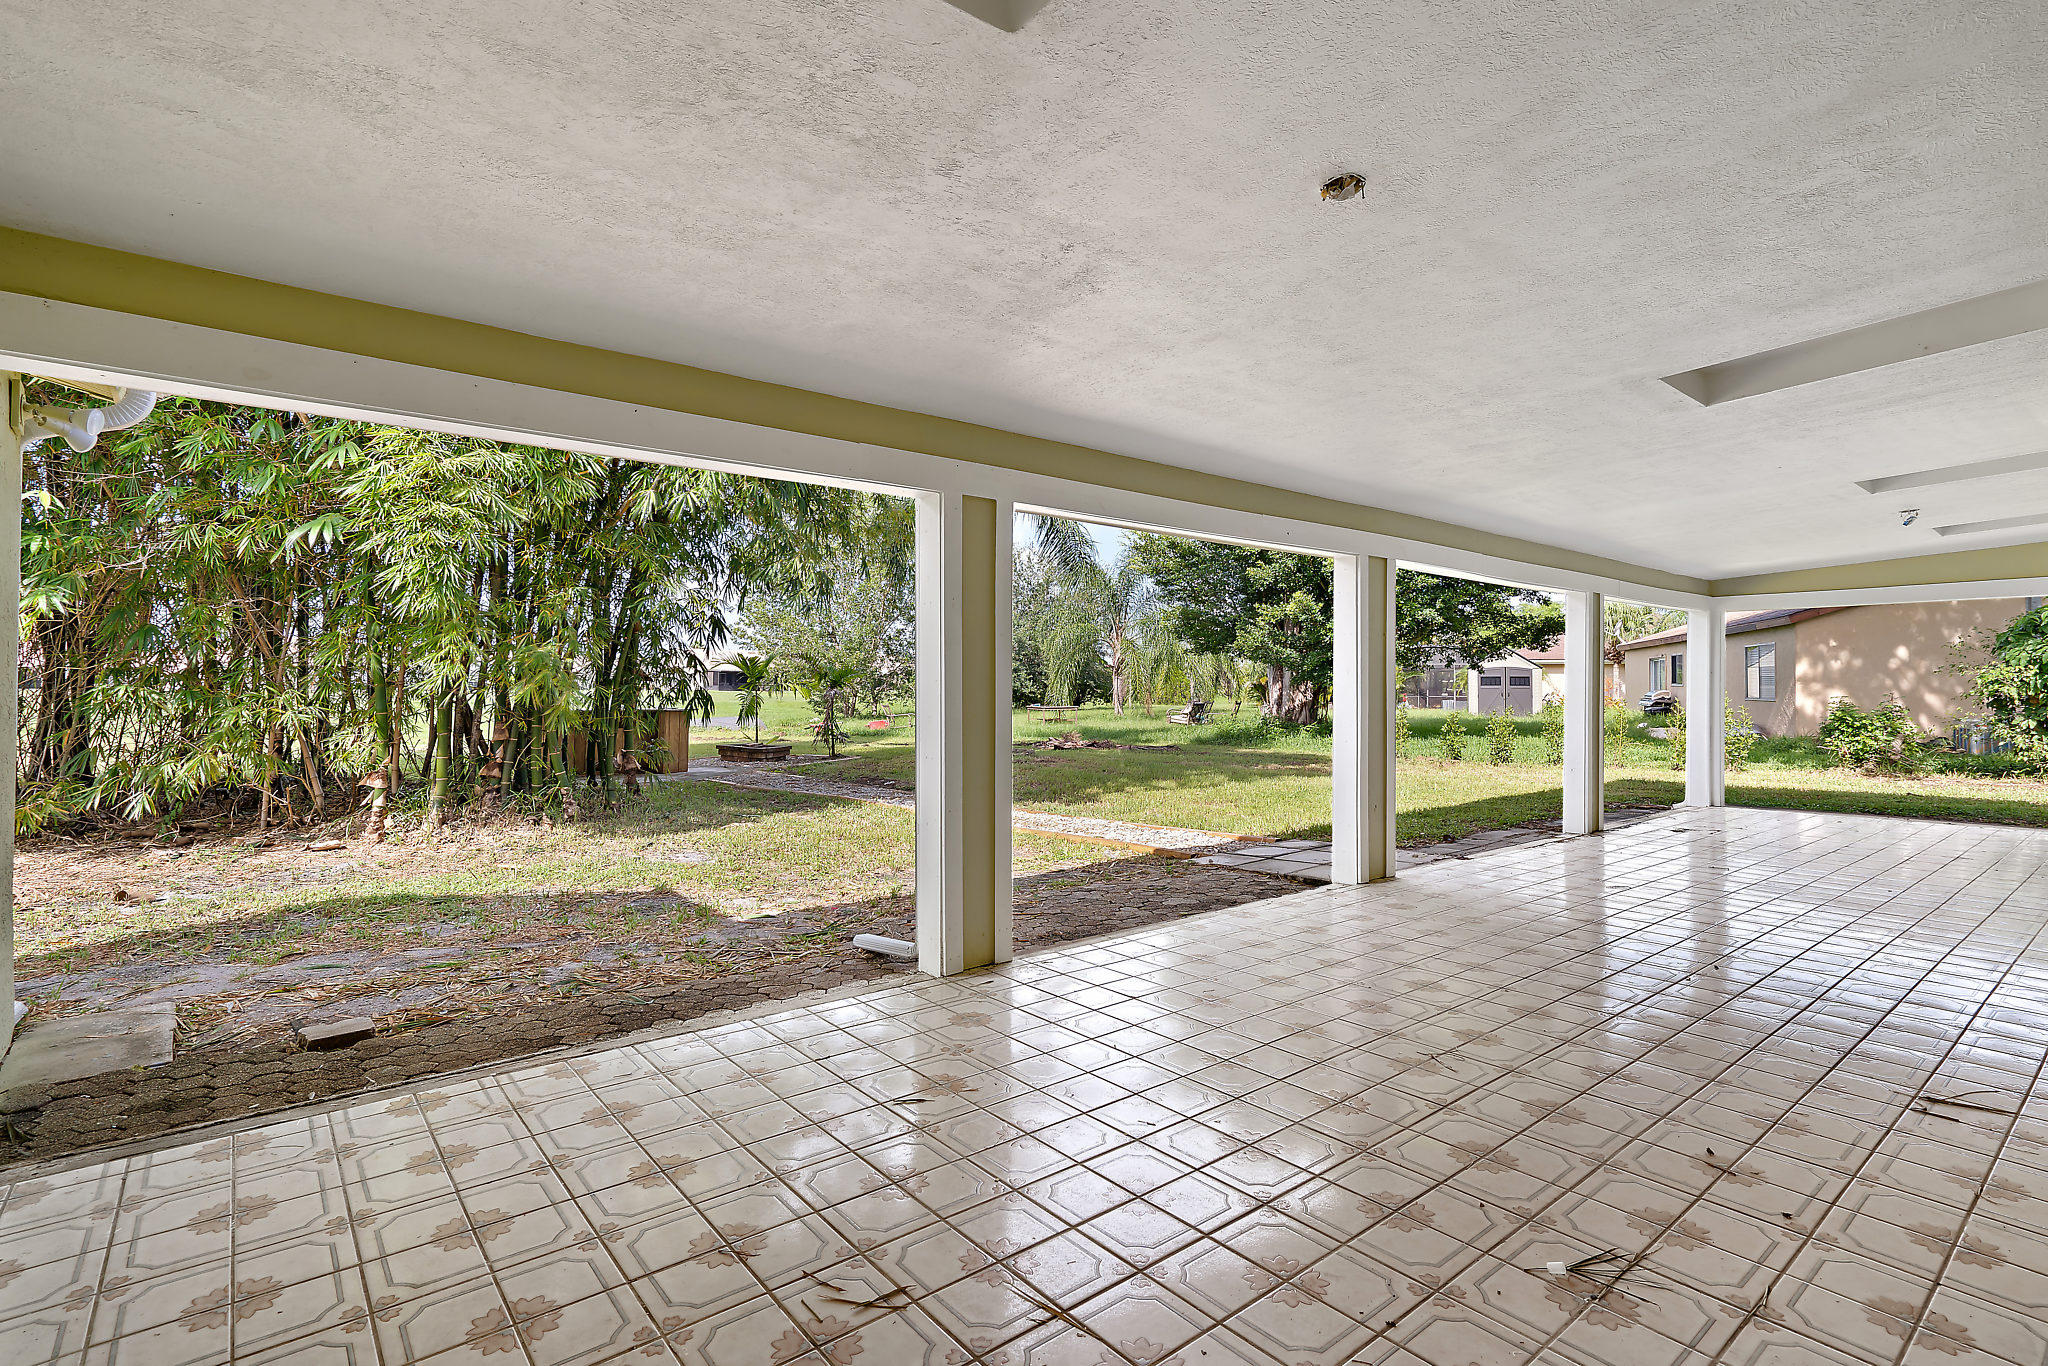 PORT ST LUCIE-SECTION 42-FIRST REPLAT- BLK 3306 LOT 1 (MAP 44/20N) (OR 3257-287)